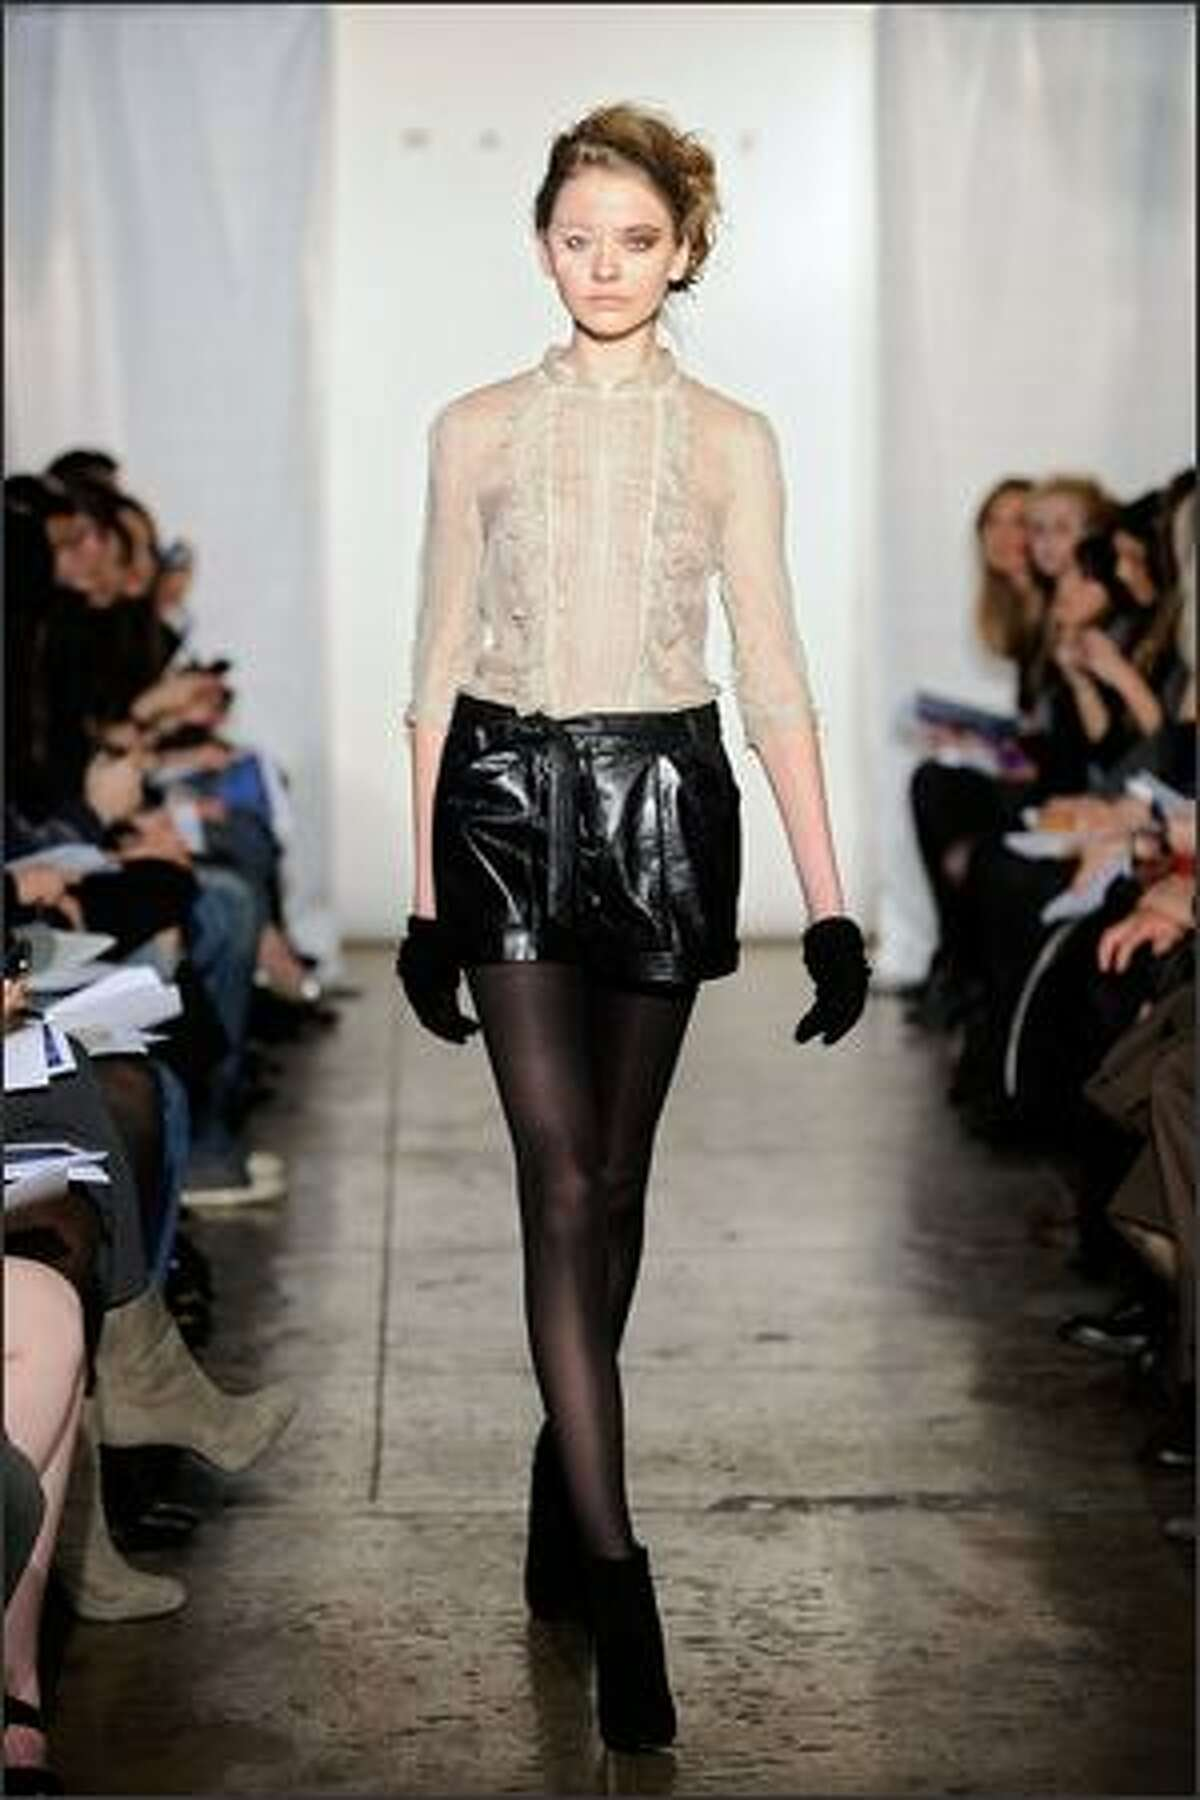 A model walks the runway at the Walter Fall 2009 fashion show during Mercedes-Benz Fashion Week in New York City.